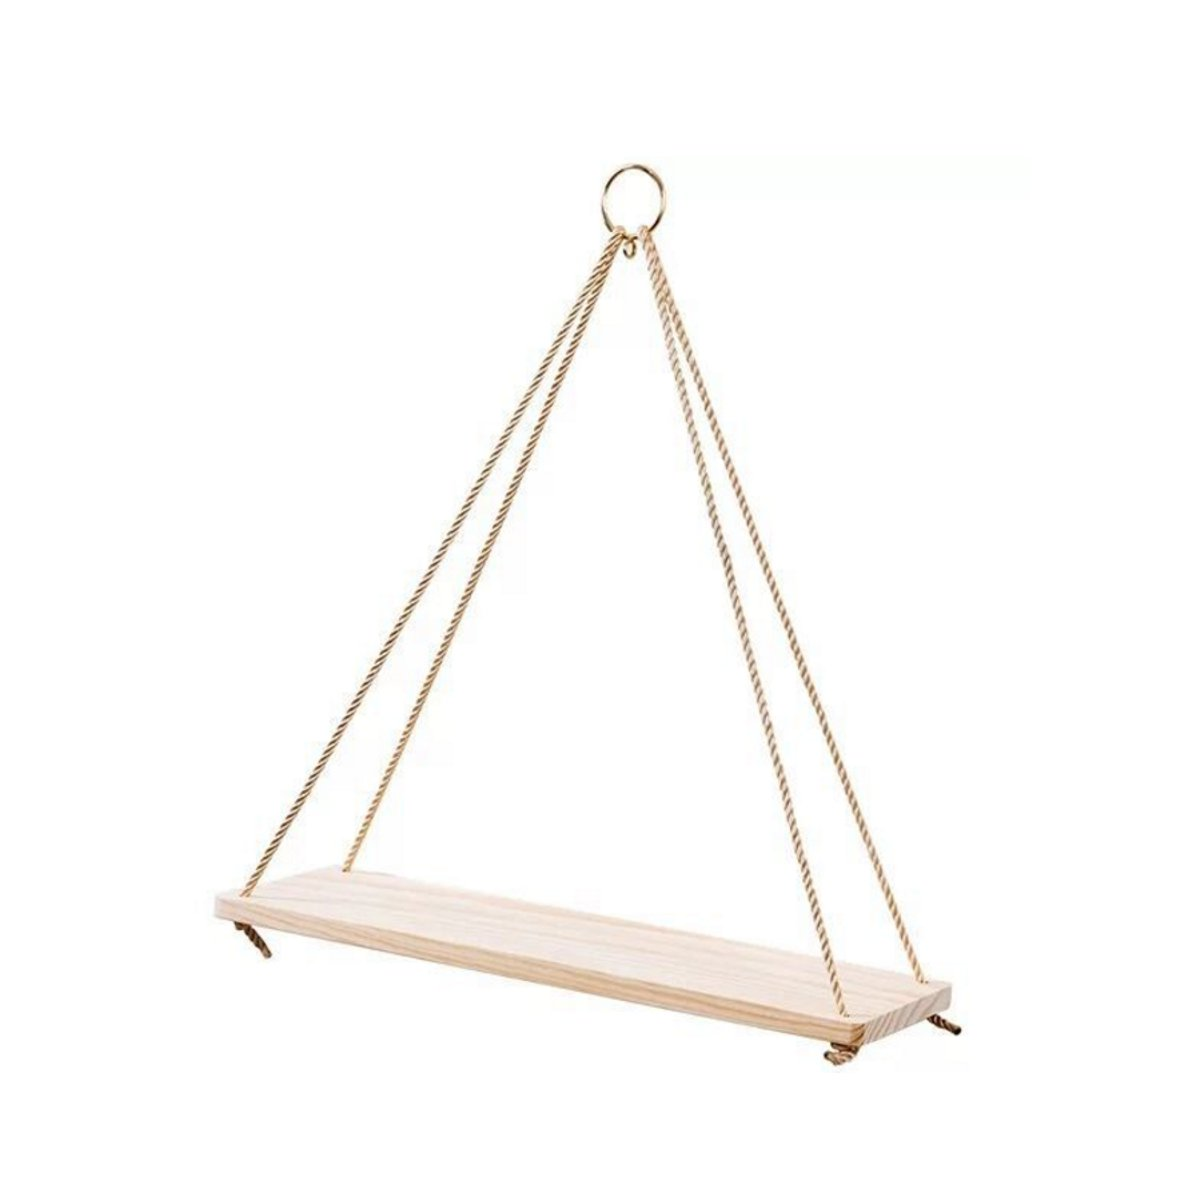 Ins Led Light String Concise Hemp Rope Wall Shelf Photo Clip Led Decorative Lights For Home Garden Party Wooden Night Light Gift Lights & Lighting